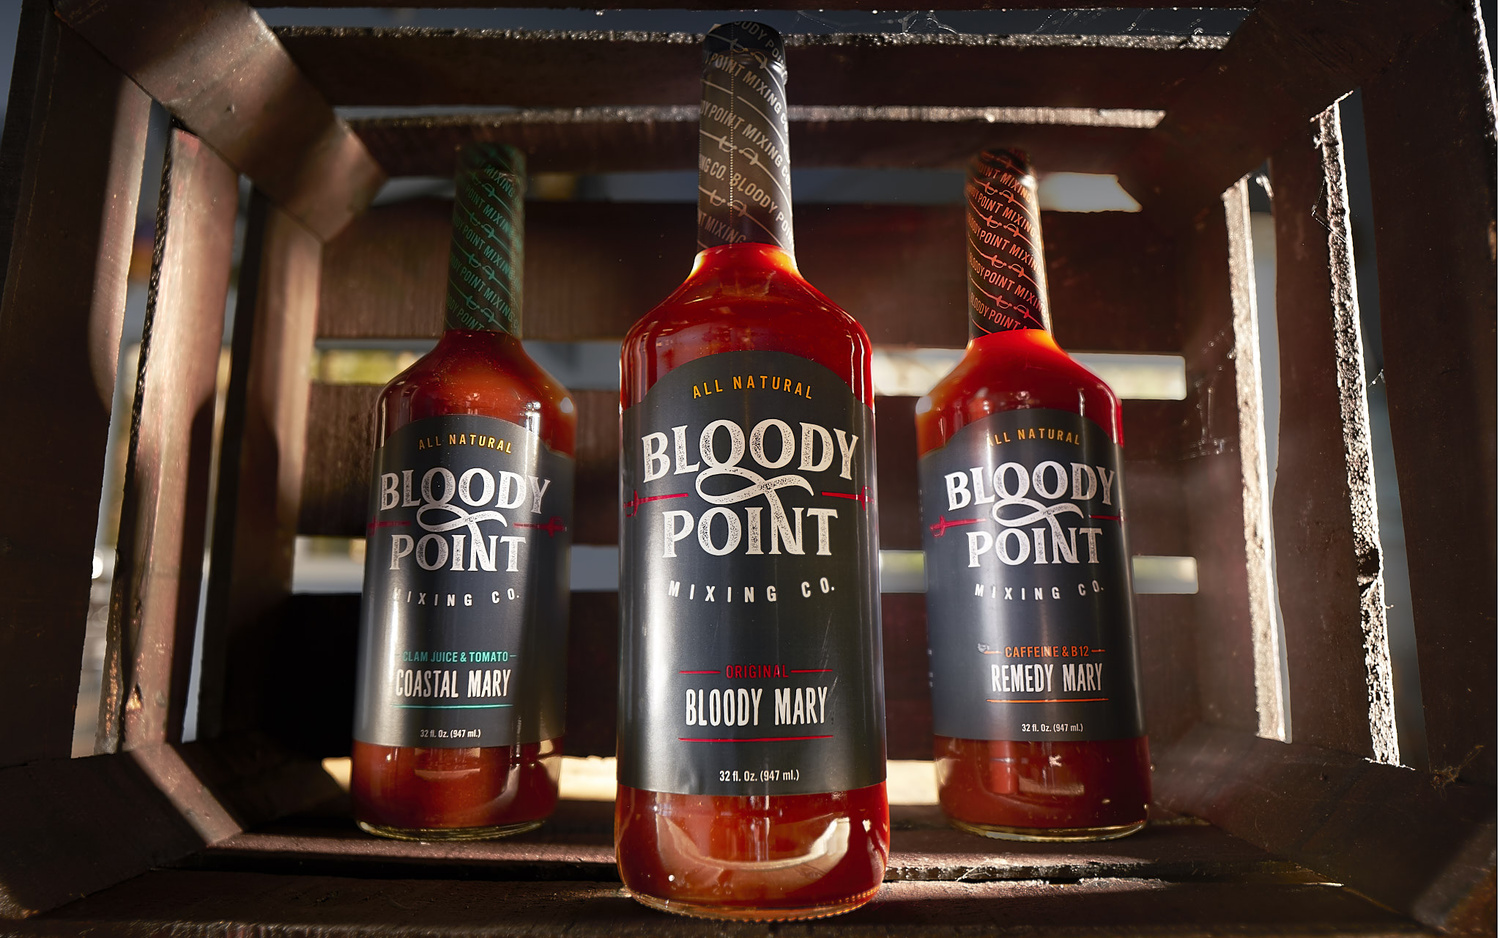 Editorial Photography featuring Bloody Point by Kim Smith